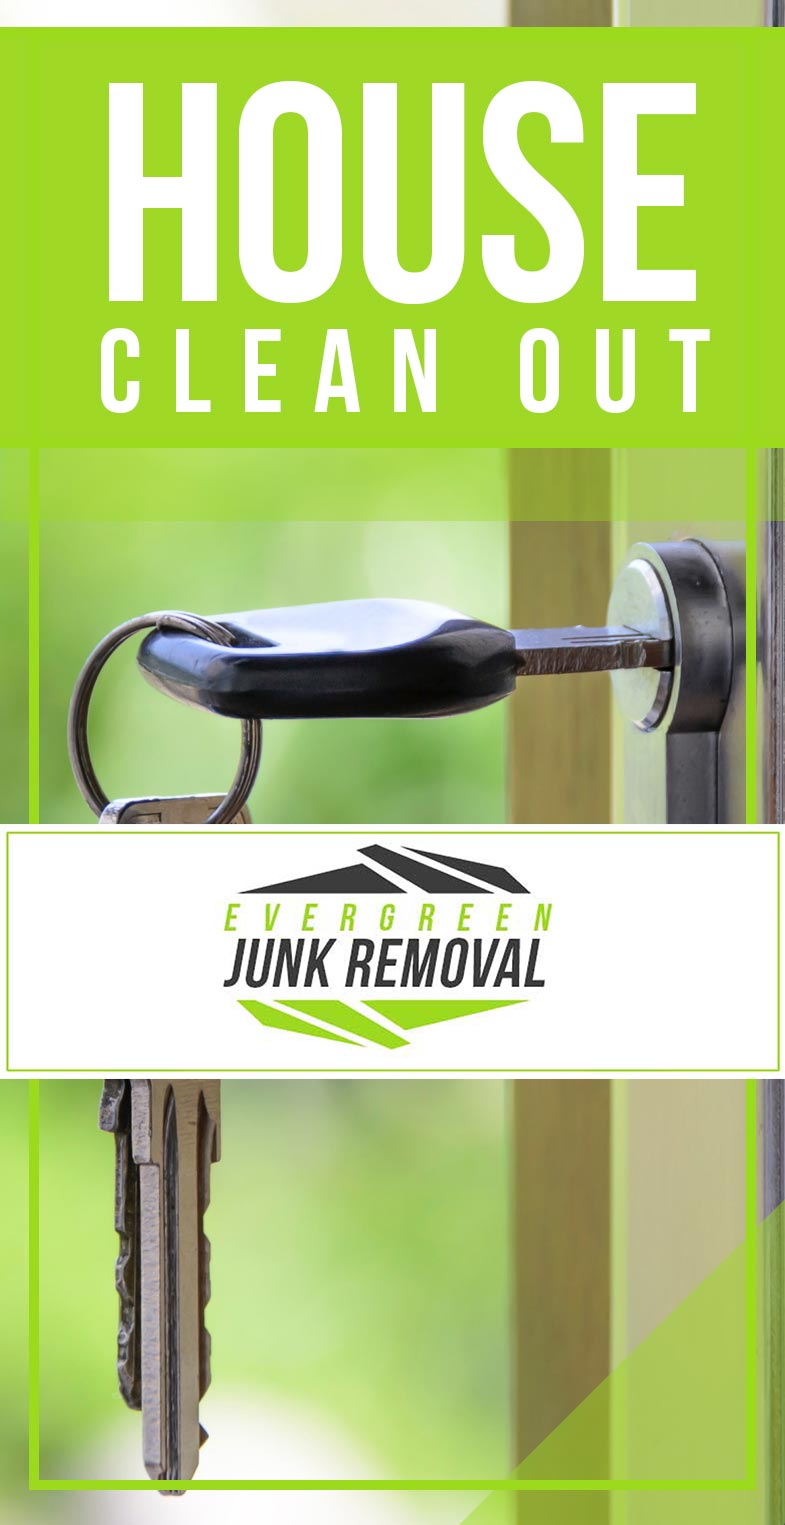 Junk Removal Ocean Ridge House Clean Out